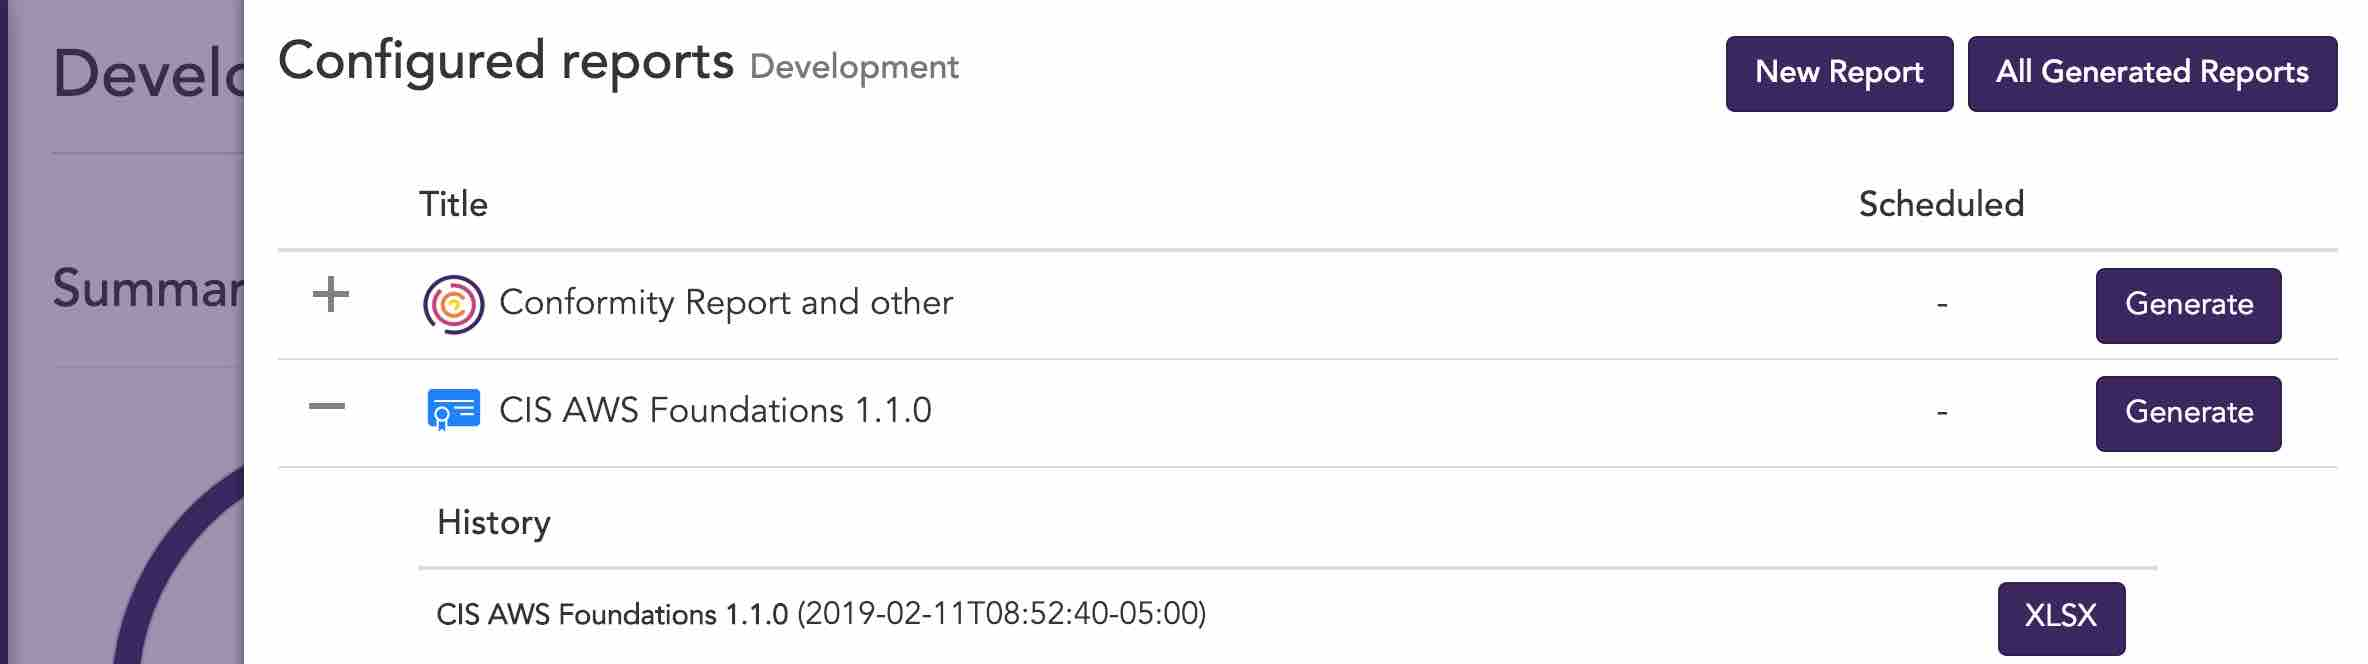 The Center of Internet Security AWS Foundations Benchmark